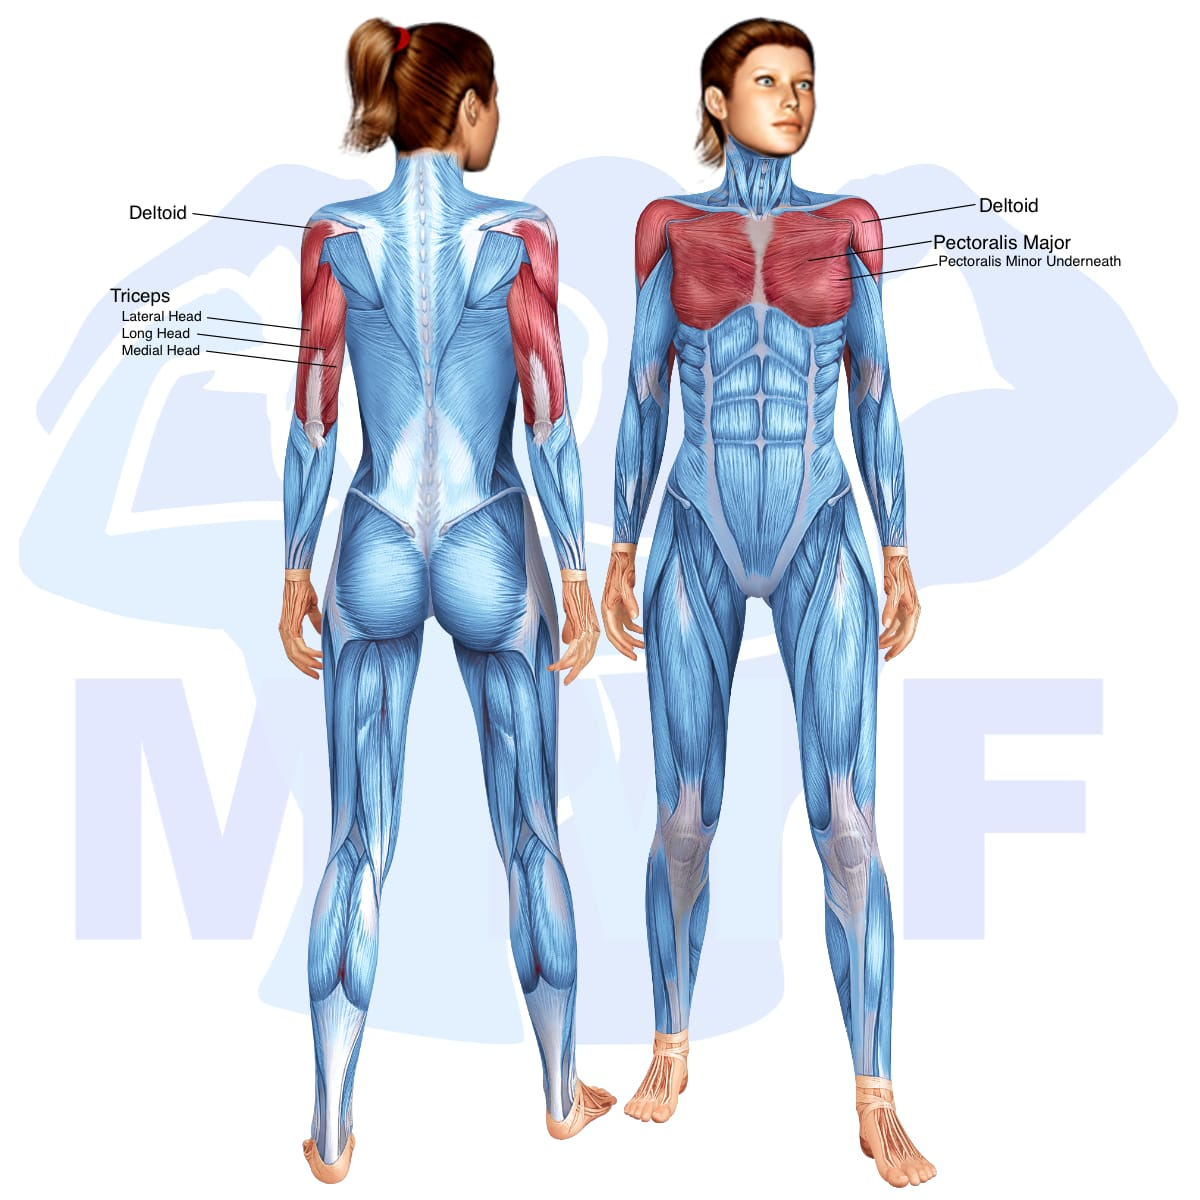 Skeletal muscle systems for a muscular woman, with muscles highlighted in red that are use during resistance band push ups.